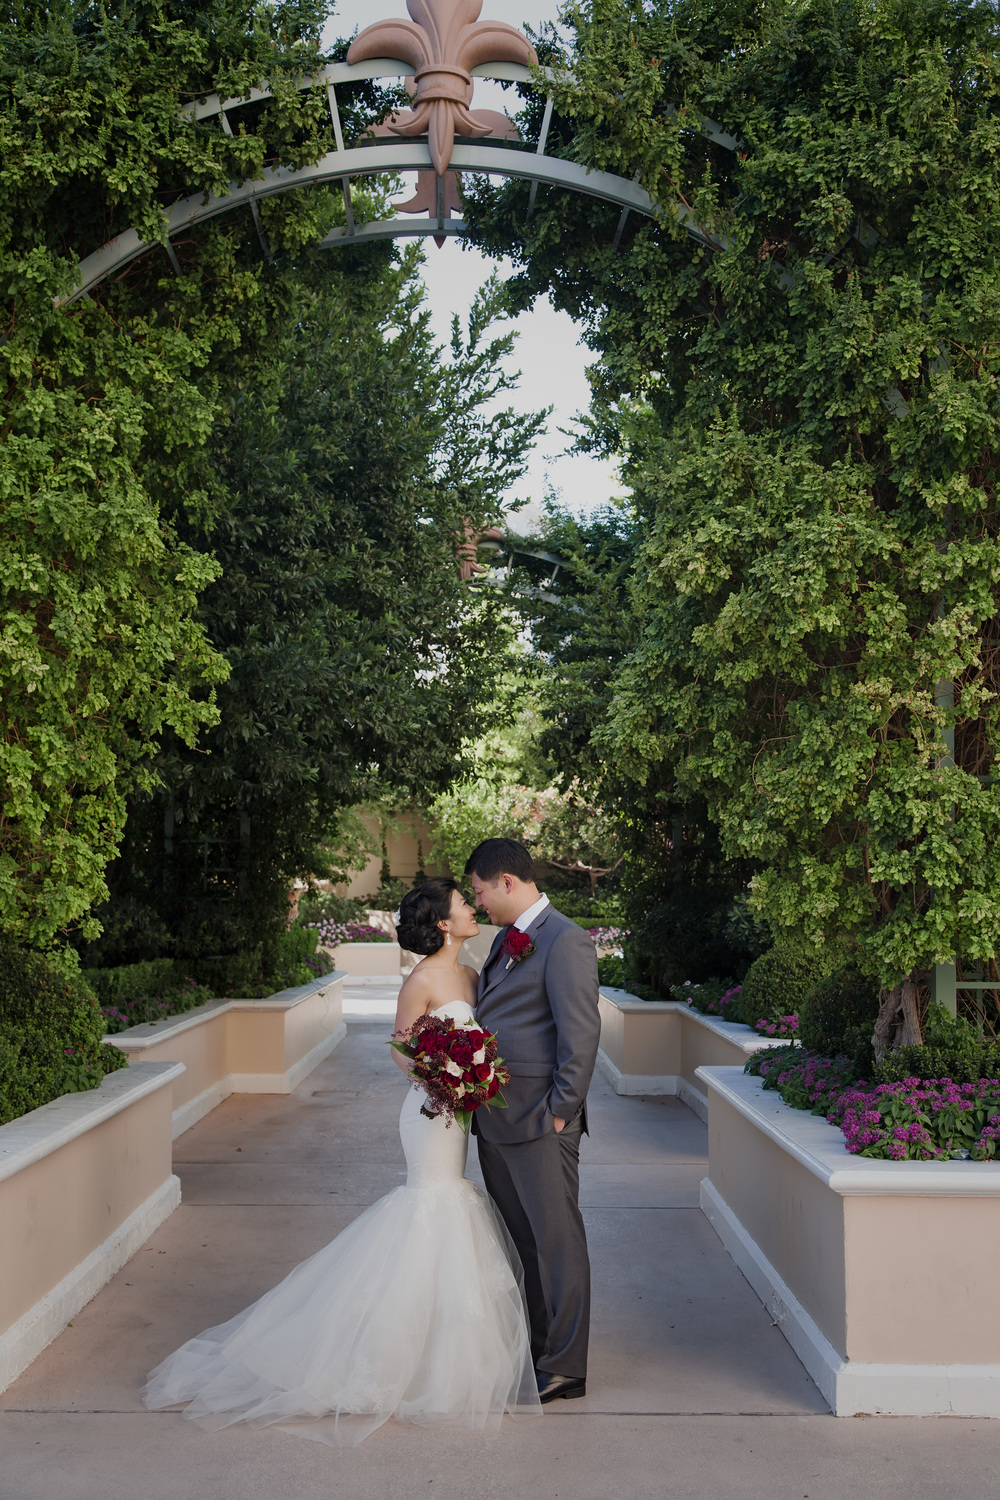 Formal wedding portraits outside are both romantic and wildly beautiful with the greenery and trees all around.  Vendor Credit:  Venue: Paris Hotel Las Vegas and Chateau | Las Vegas Wedding Planner Andrea Eppolito | Photo: Adam Frazier Photography | Decor: Naakiti Floral | Beauty: Make Up in the 702